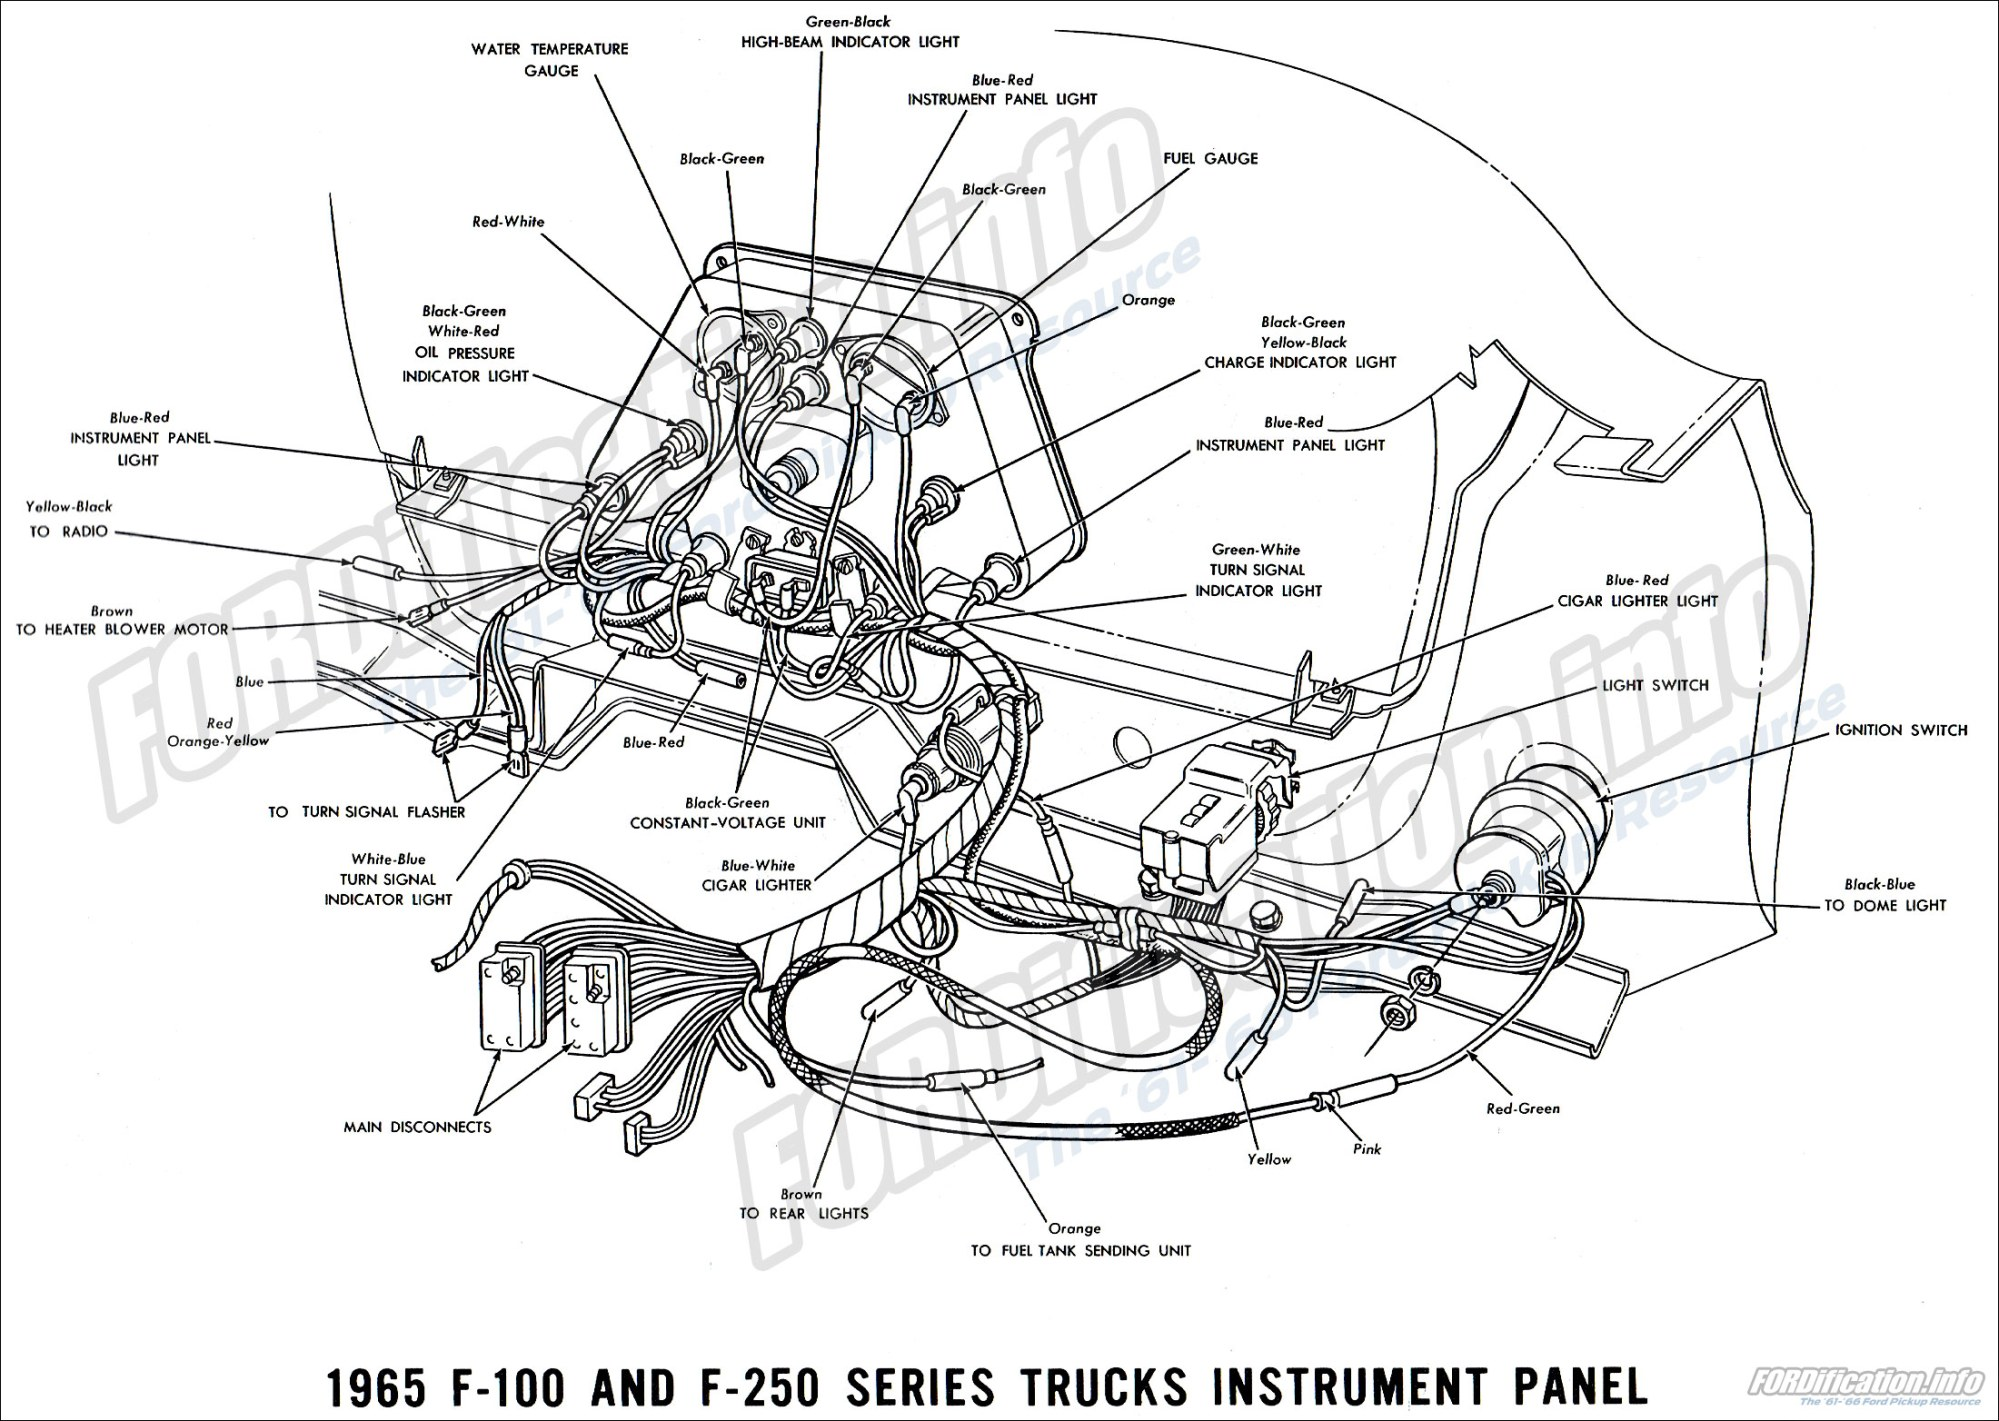 hight resolution of 1965 ford truck wiring diagrams fordification info the 61 66 65 ford f100 wiring diagram